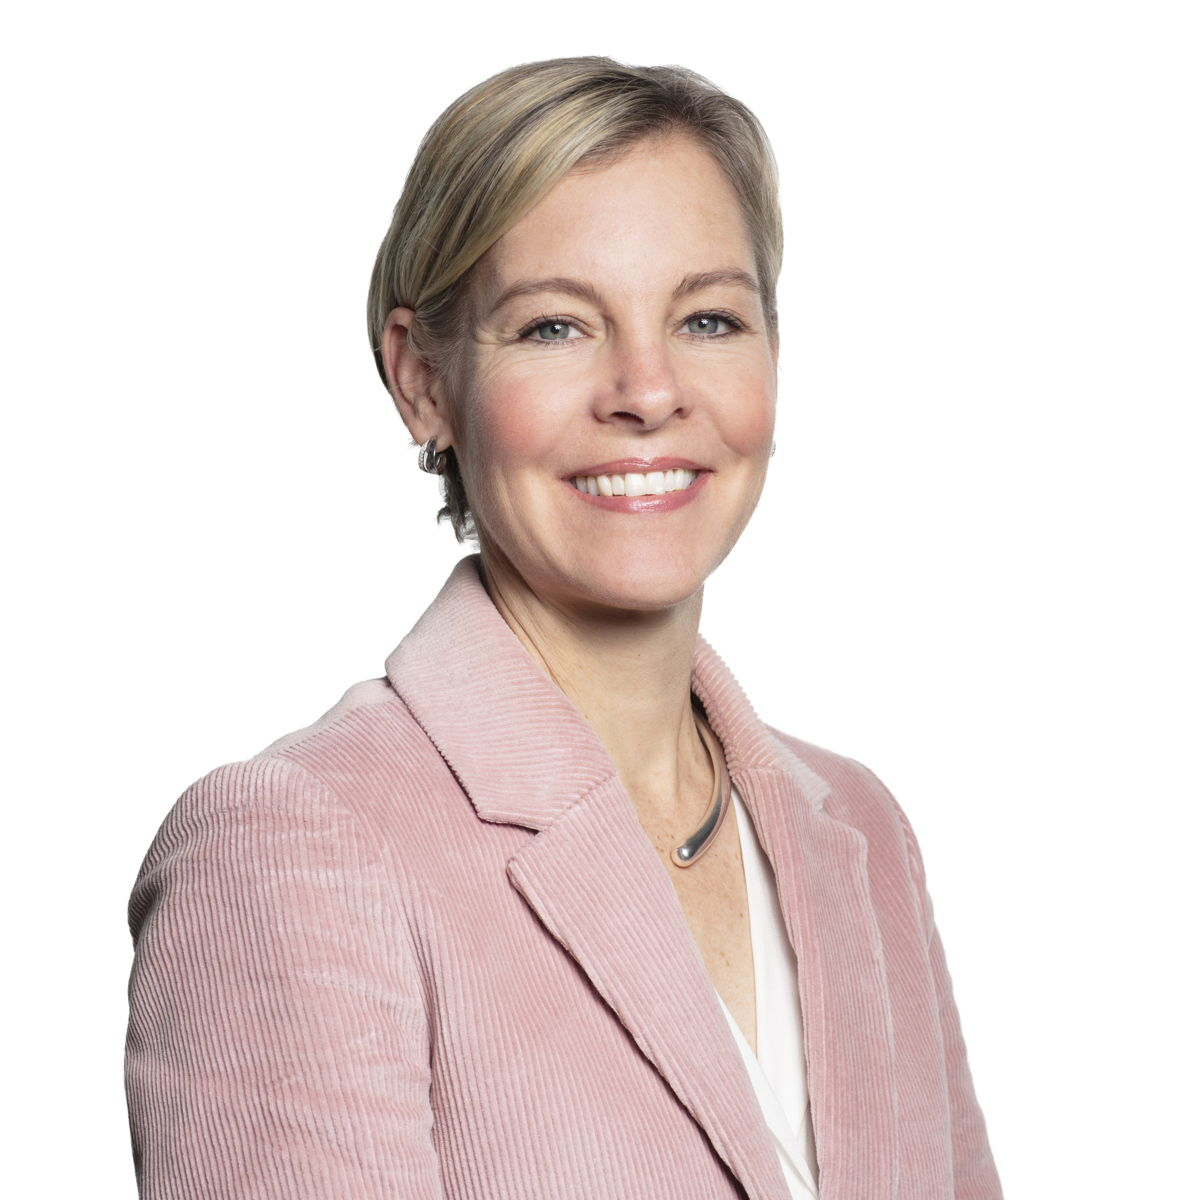 Keri Gilder, Chief Executive Officer (CEO) chez Colt